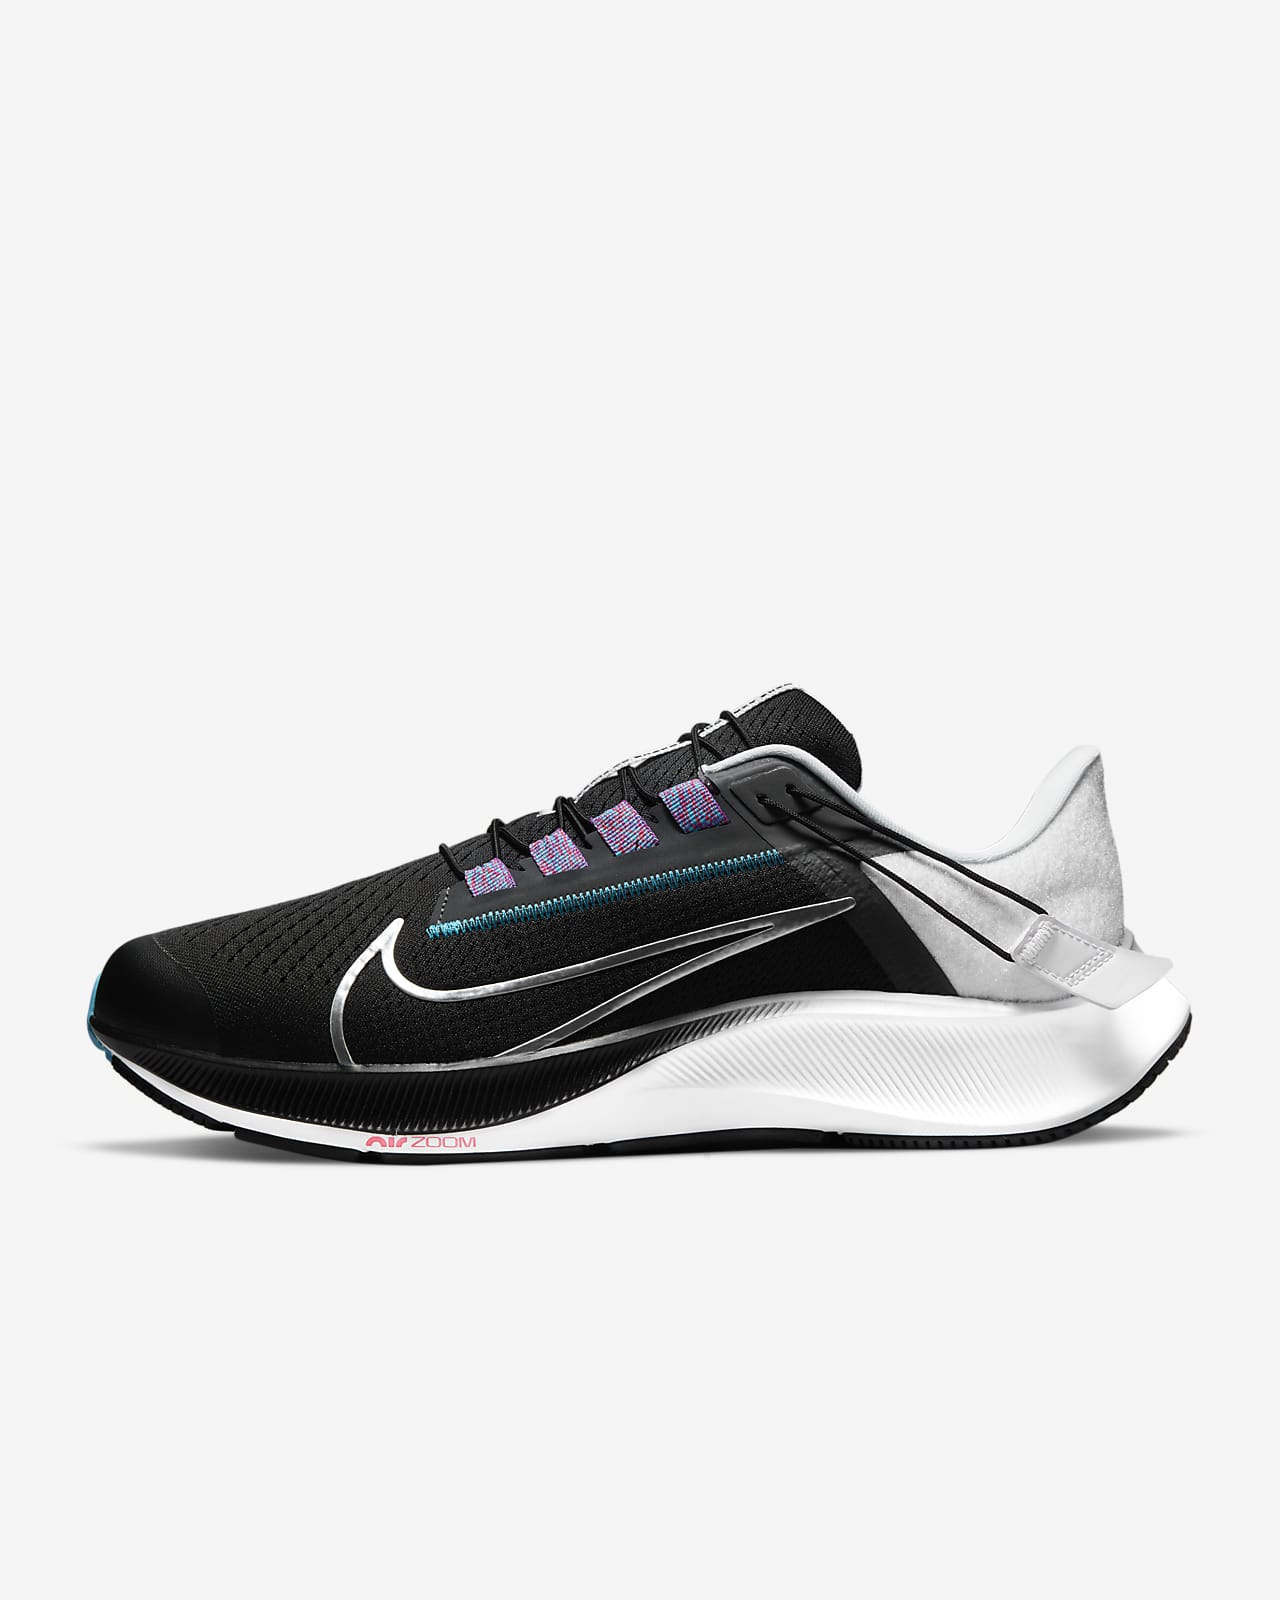 Chaussures de running Nike Air Zoom Pegasus 38 FlyEase pour Homme (extra large)